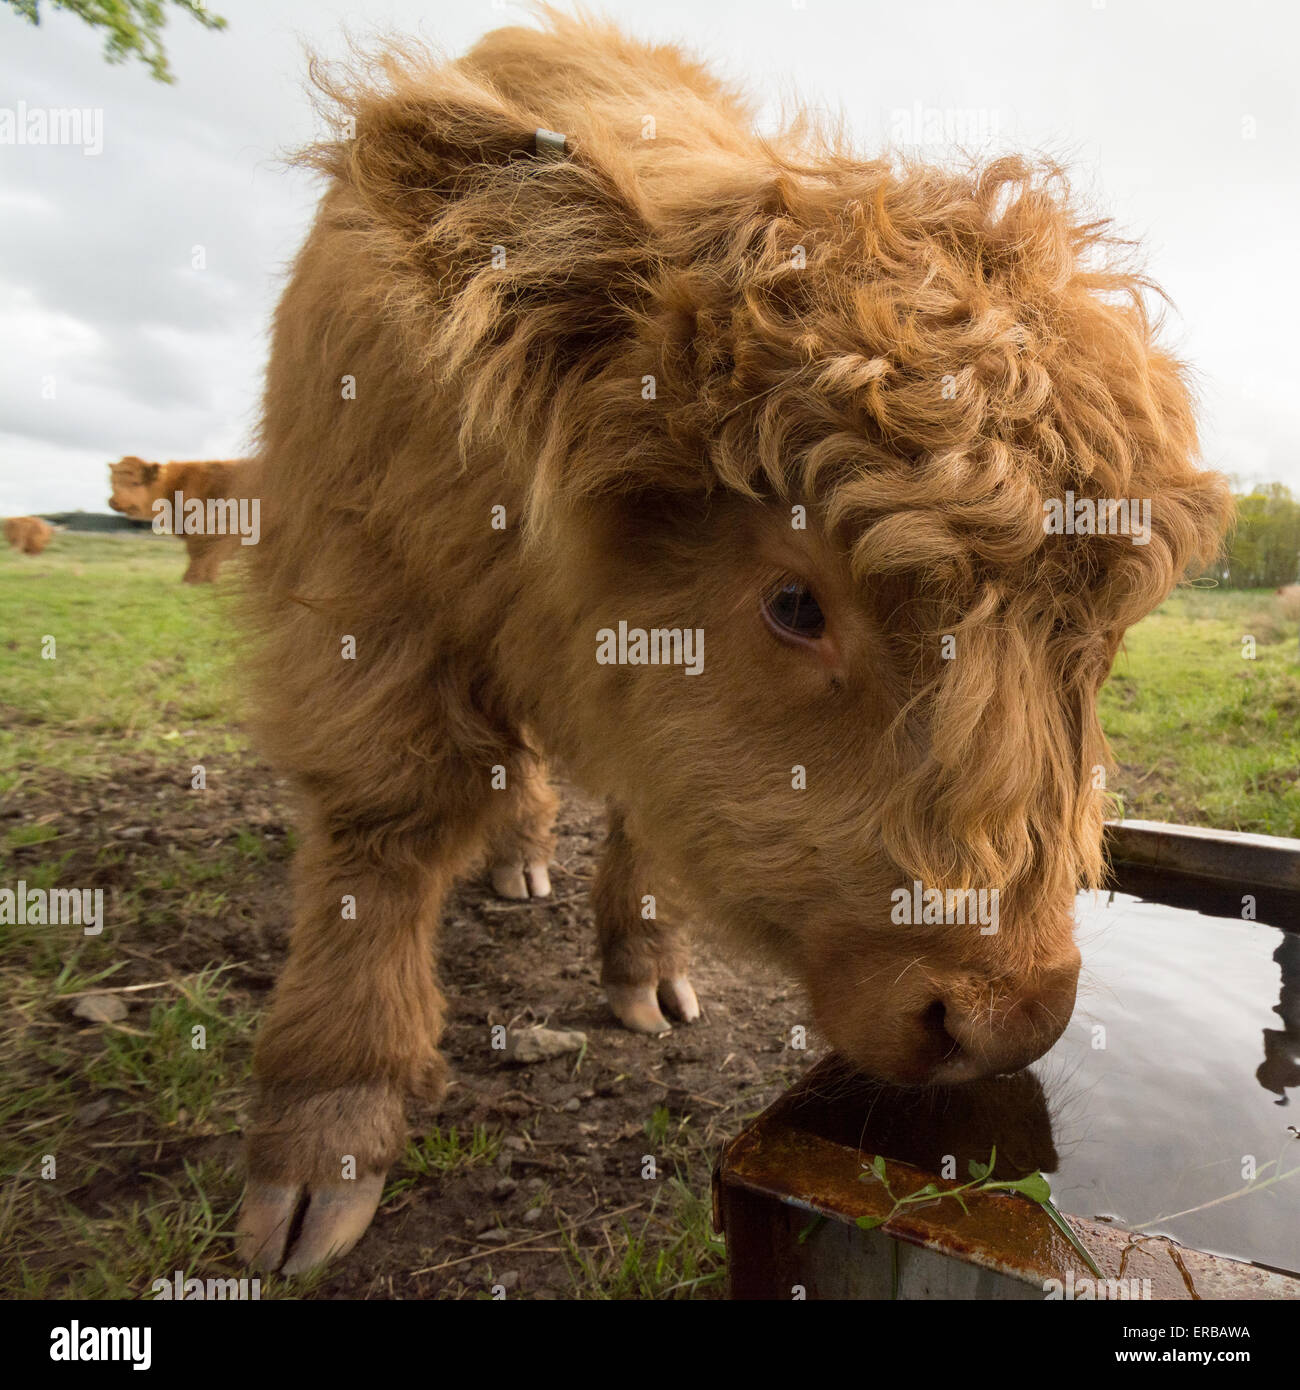 highland calf in field drinking from water trough - Scotland, UK - Stock Image